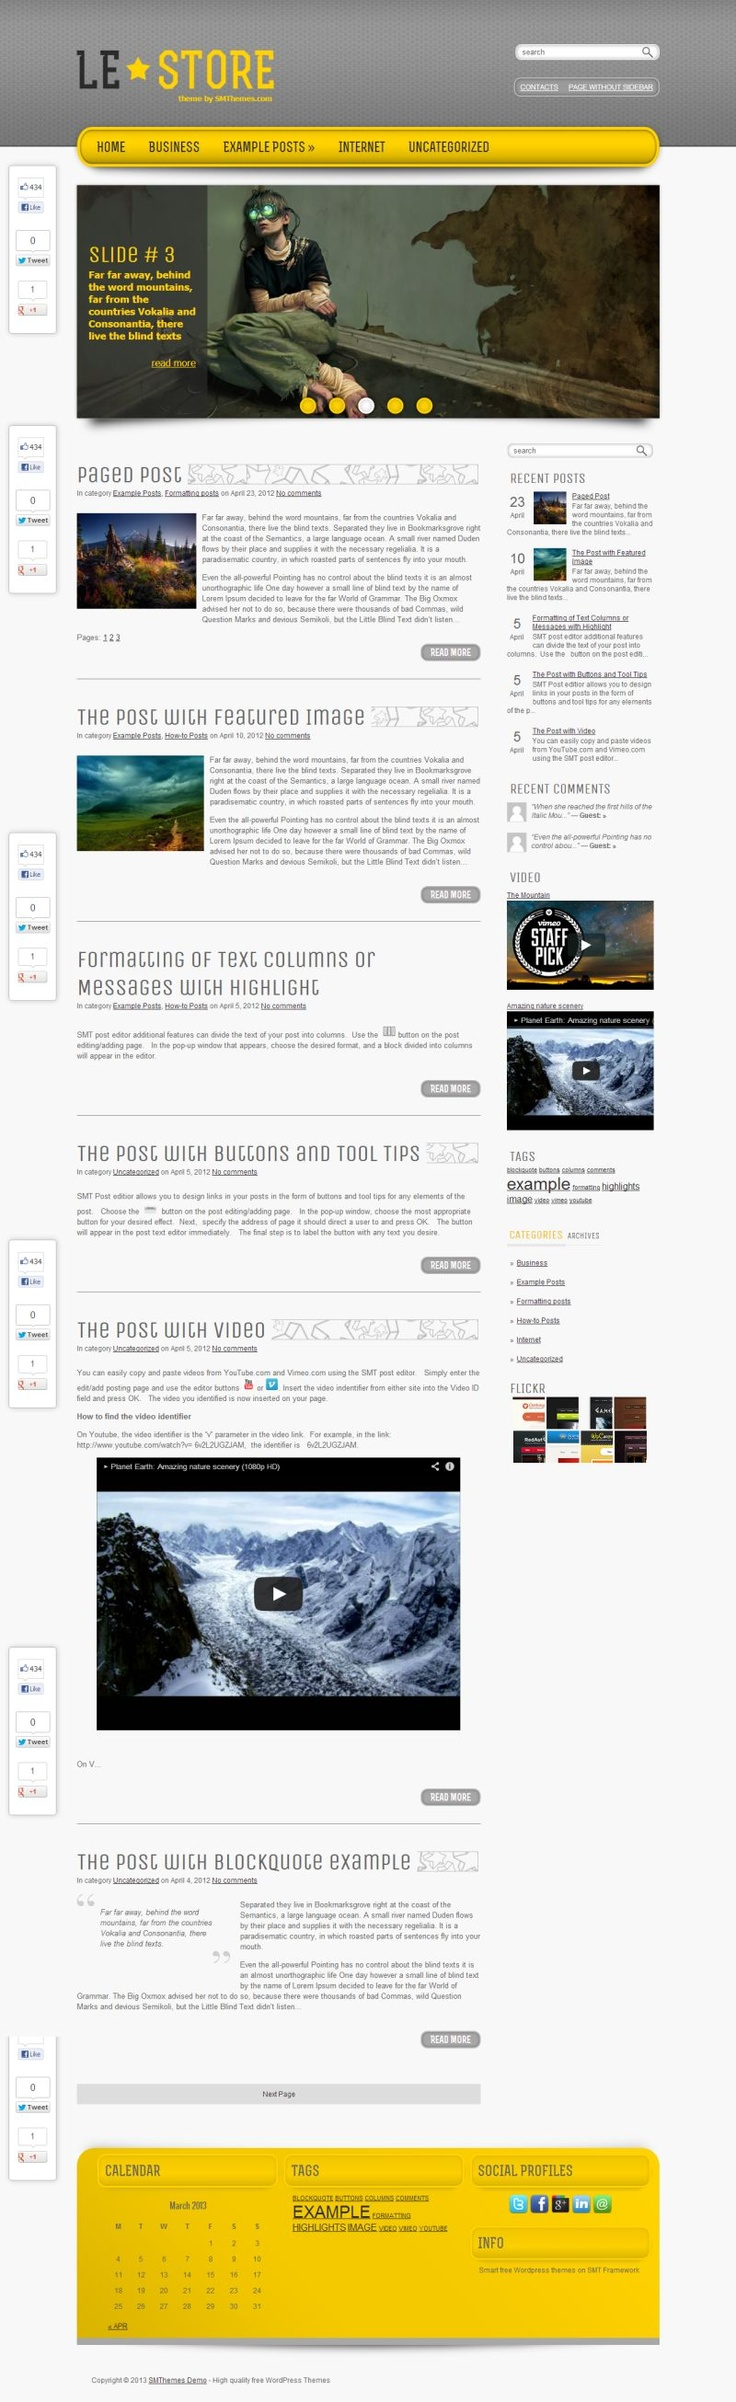 """LeStore"" - #free , stylish &  clean Hi-Tech theme for #WordPress #blog."